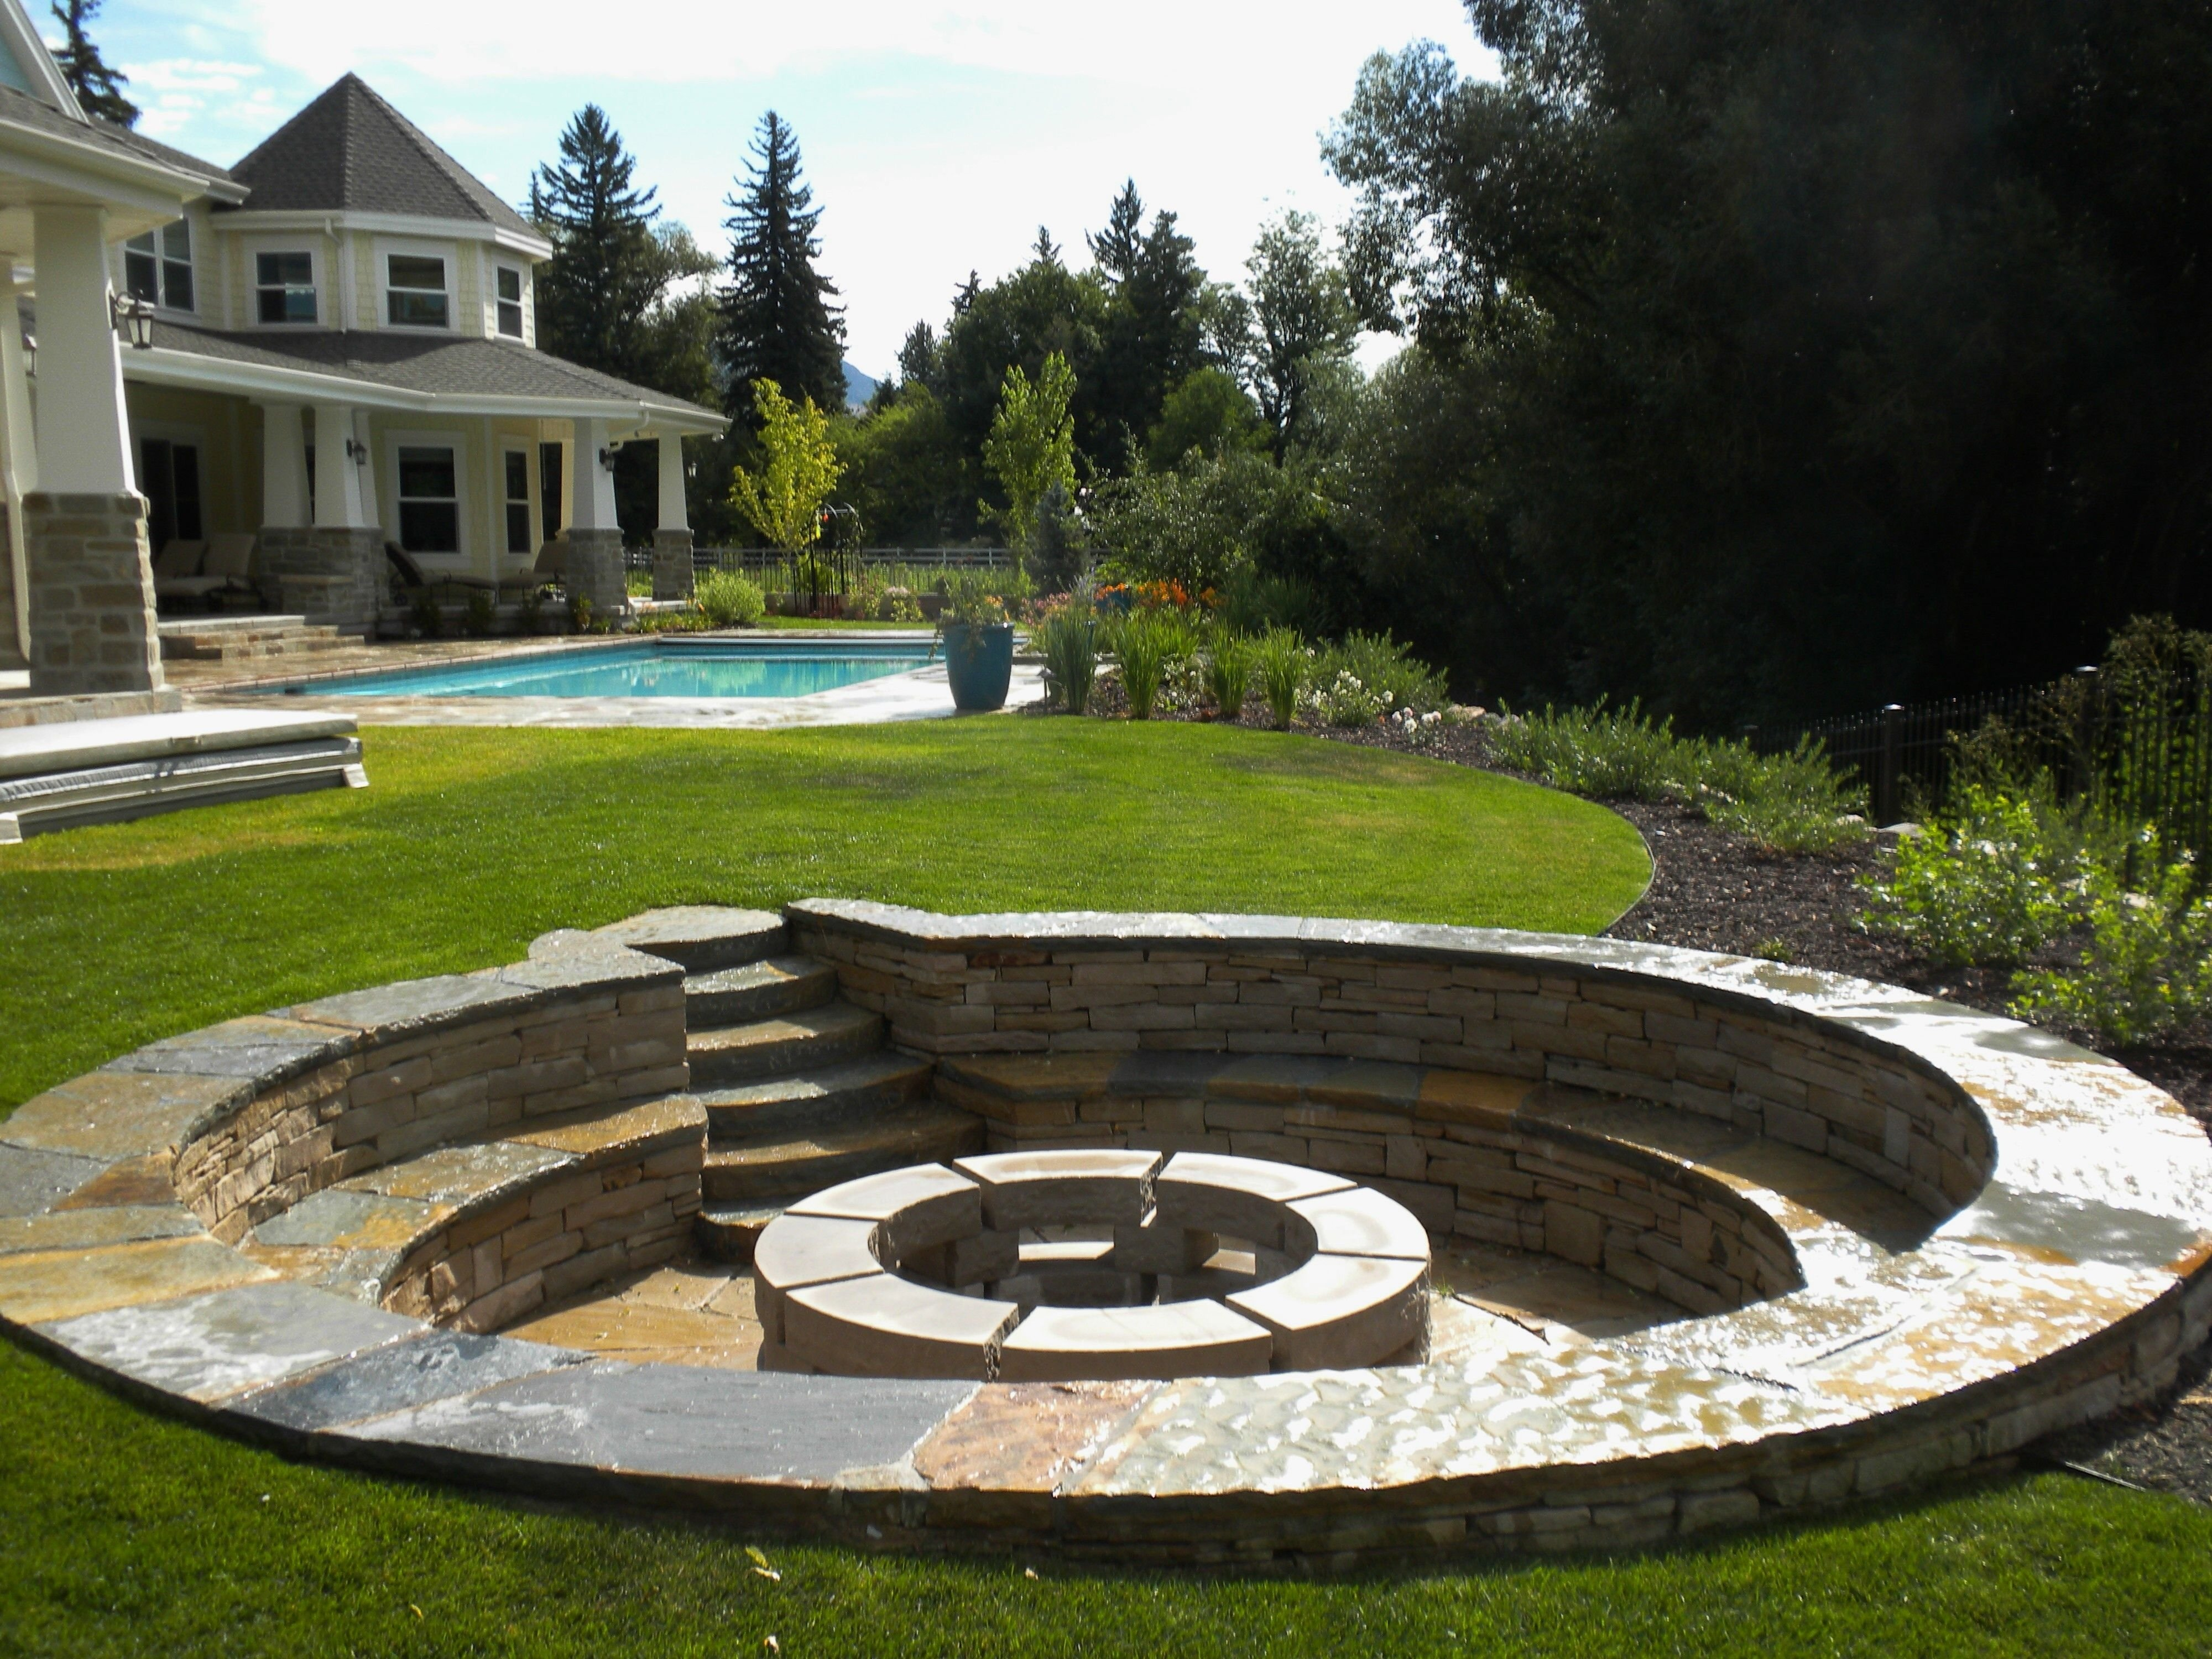 10 Fantastic In Ground Fire Pit Ideas considering backyard fire pit heres what you should know 2021